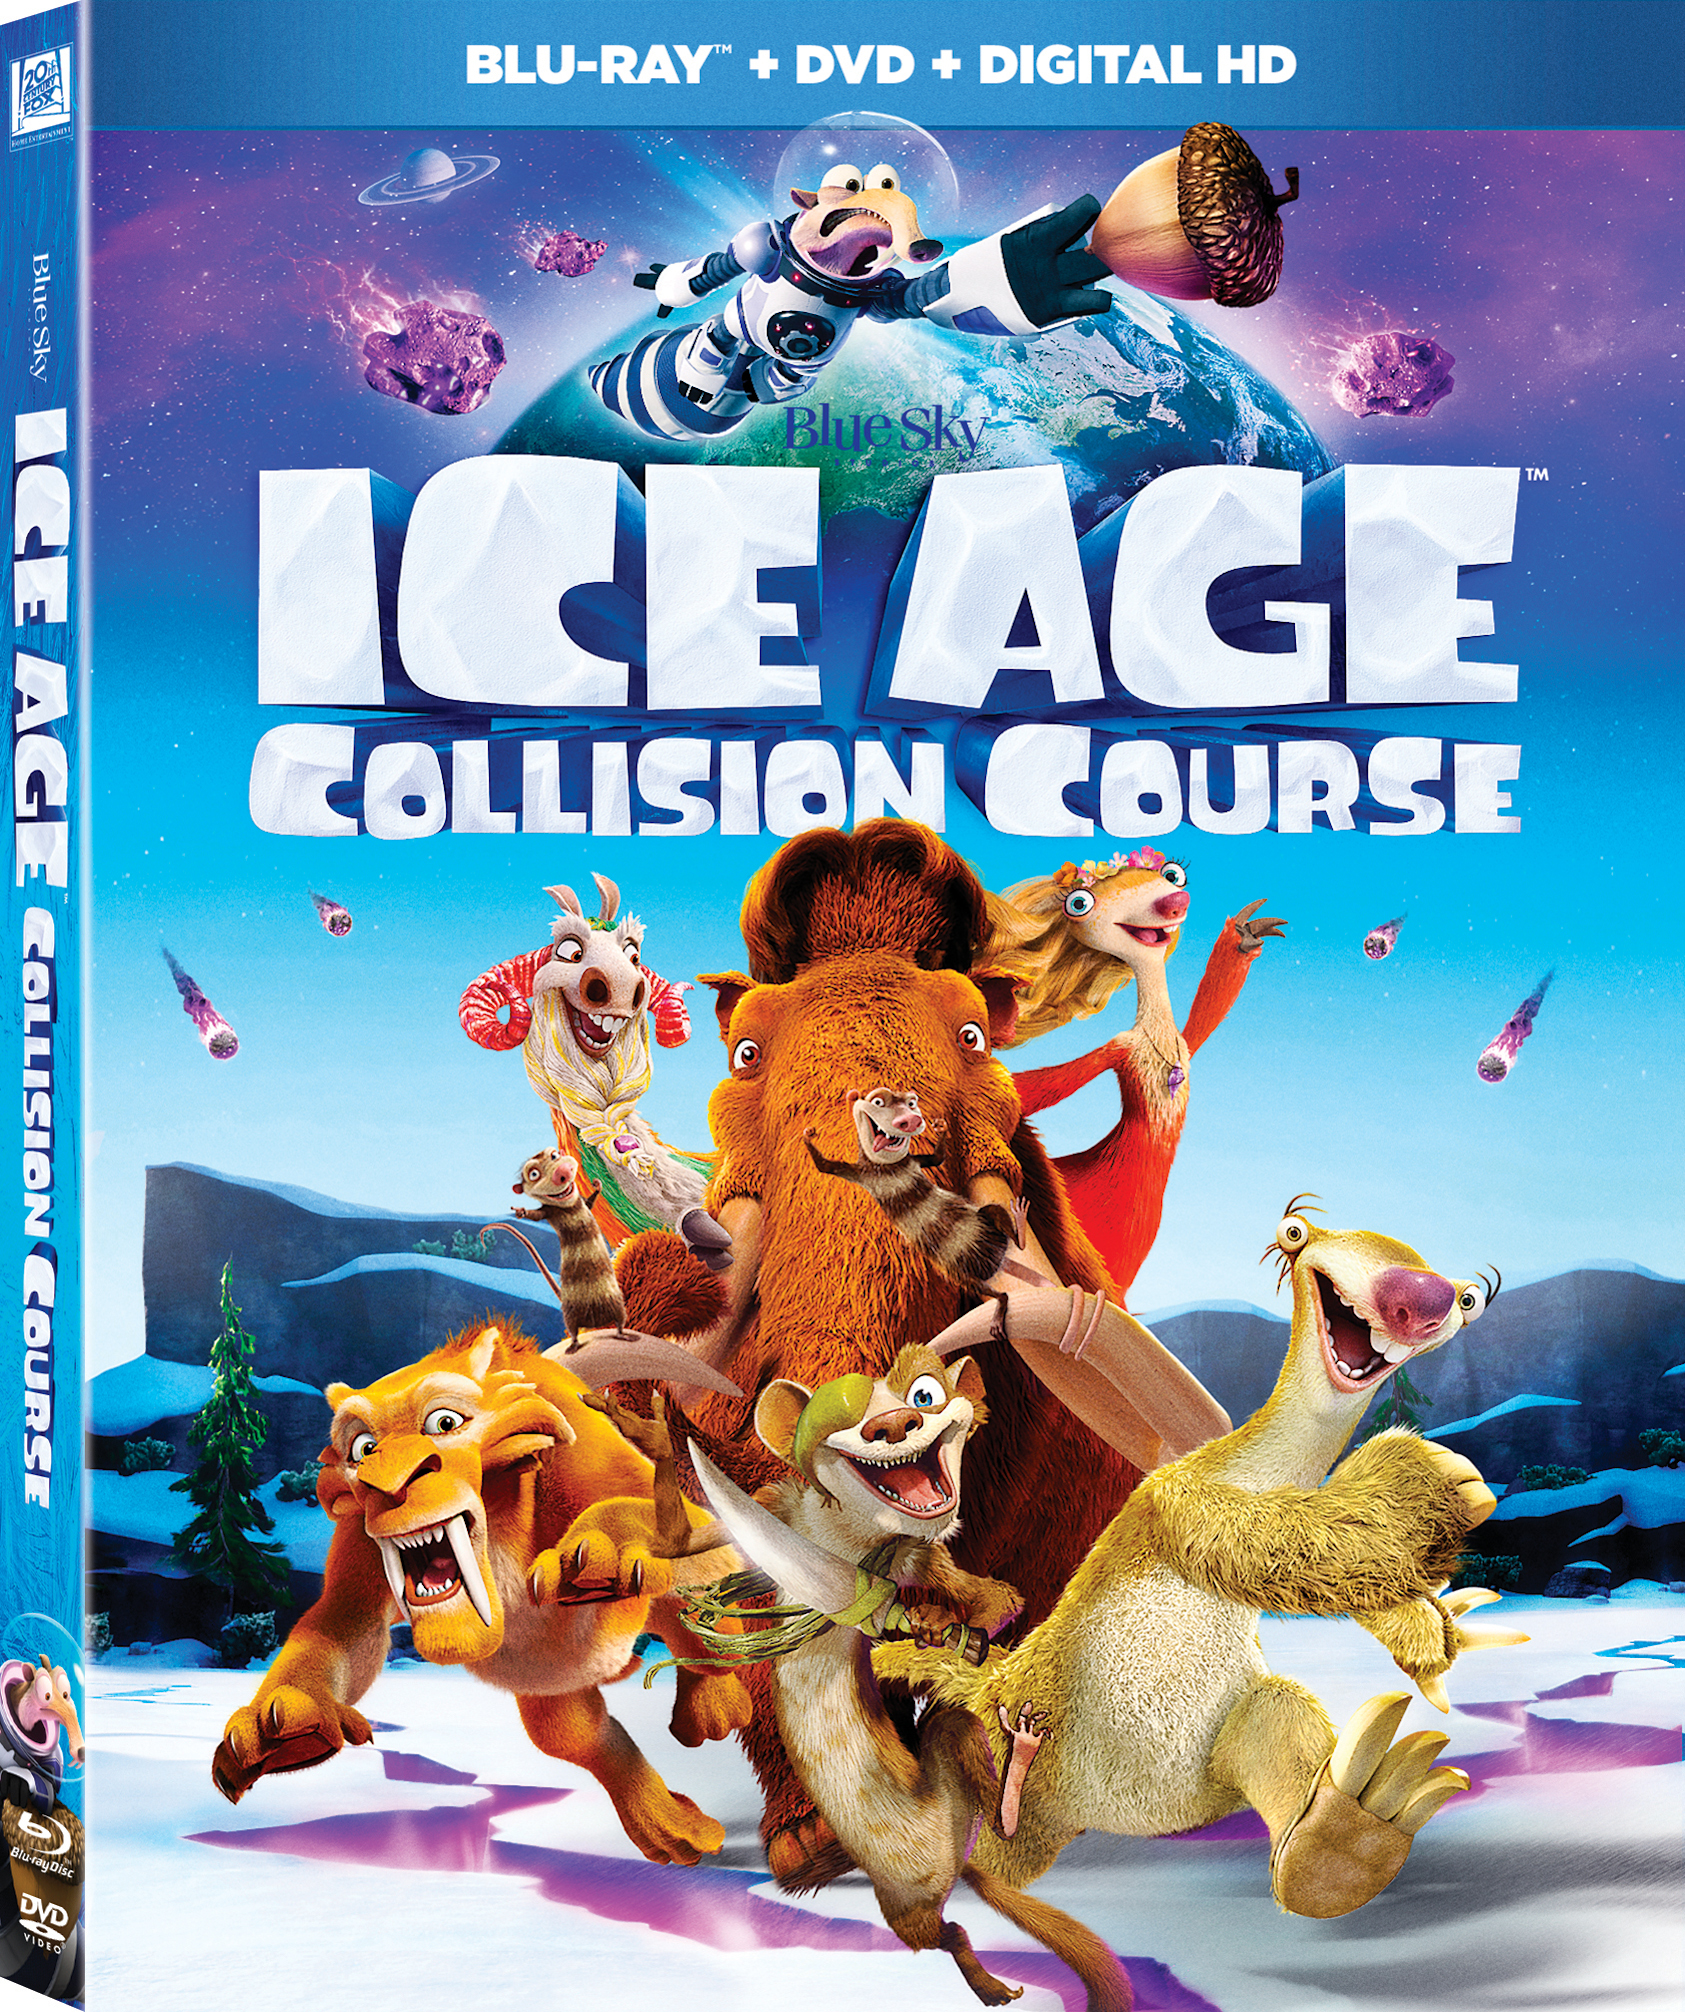 Ice Age: Collision Course (2016) poster image